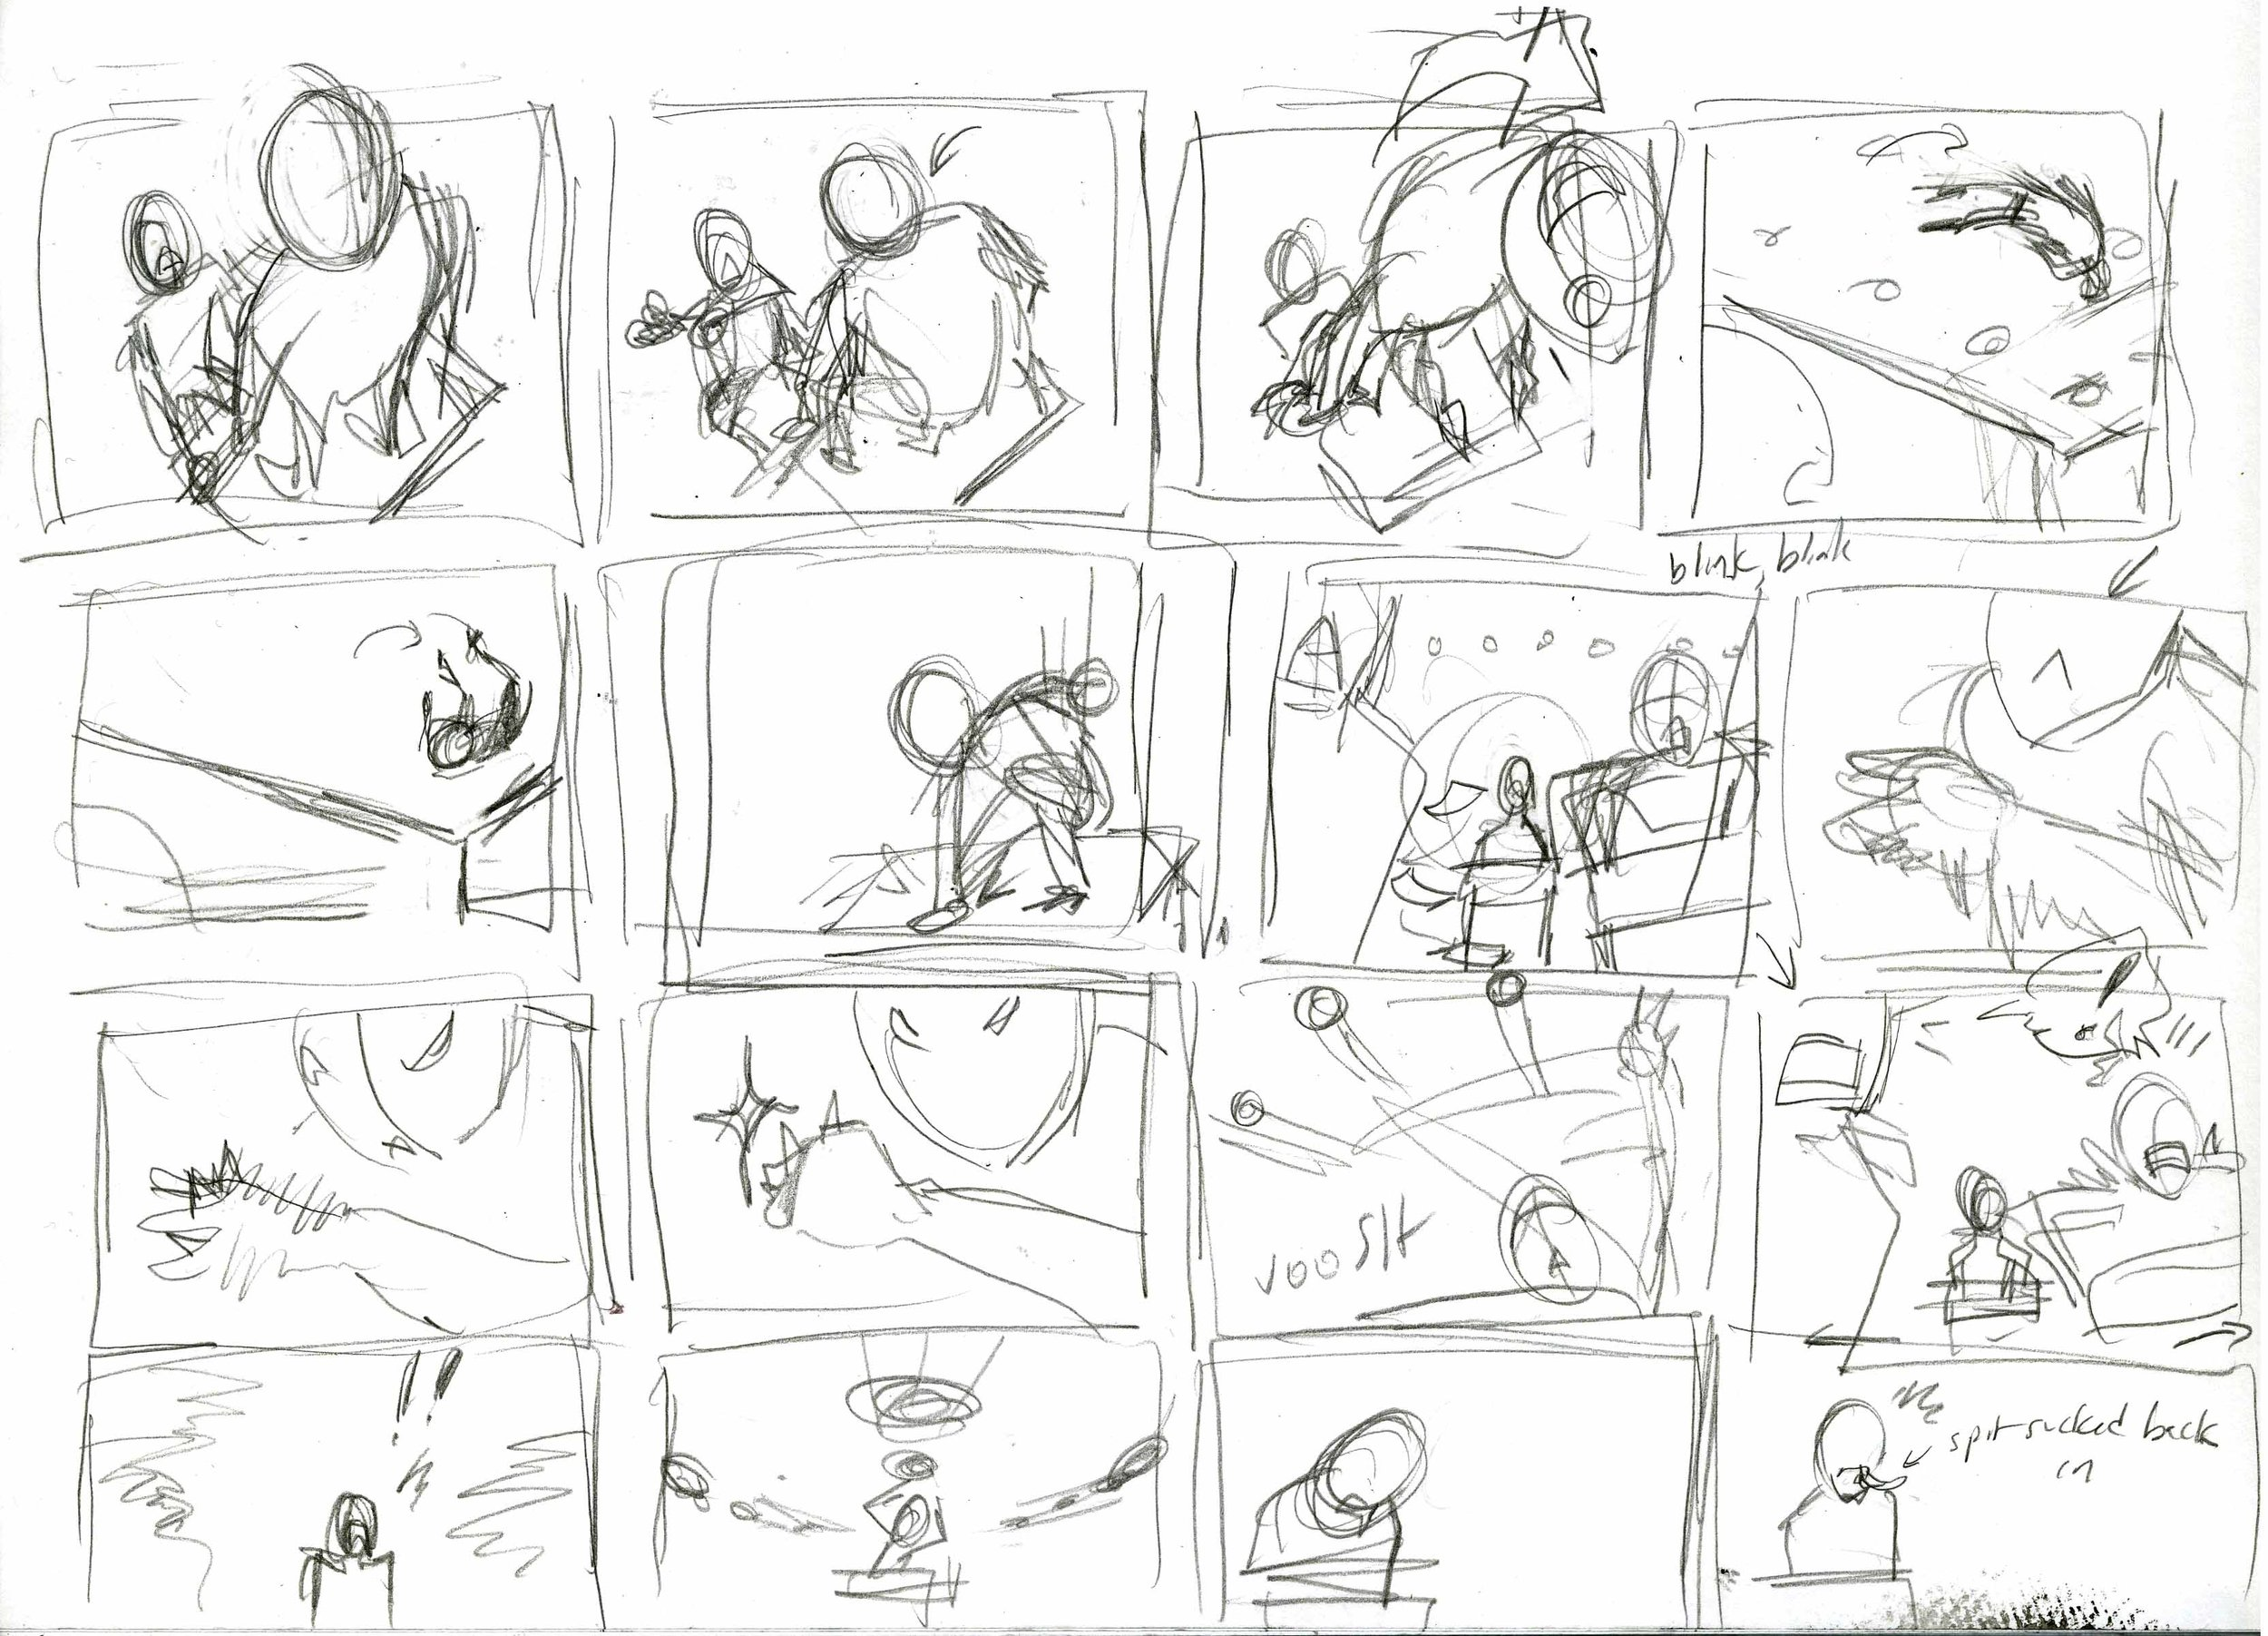 Drawn to Death Animation storyboard 2.jpg